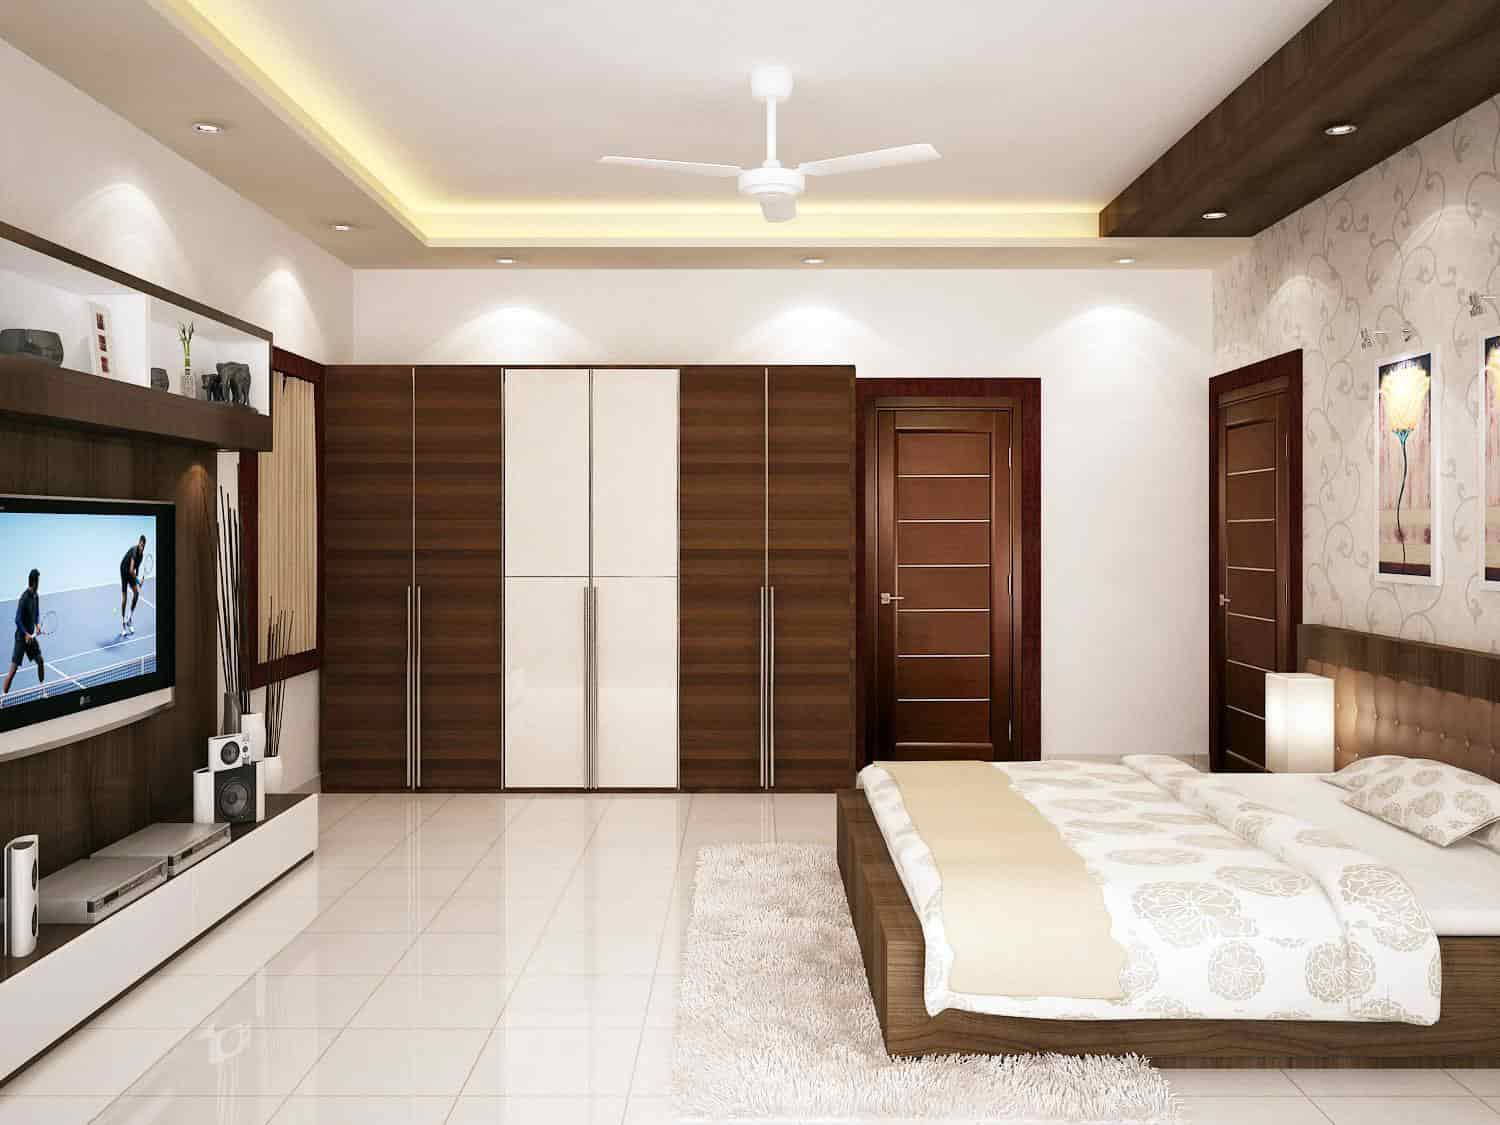 Koncept Archidesign Consultants, Bhubaneswar - Architects in ...